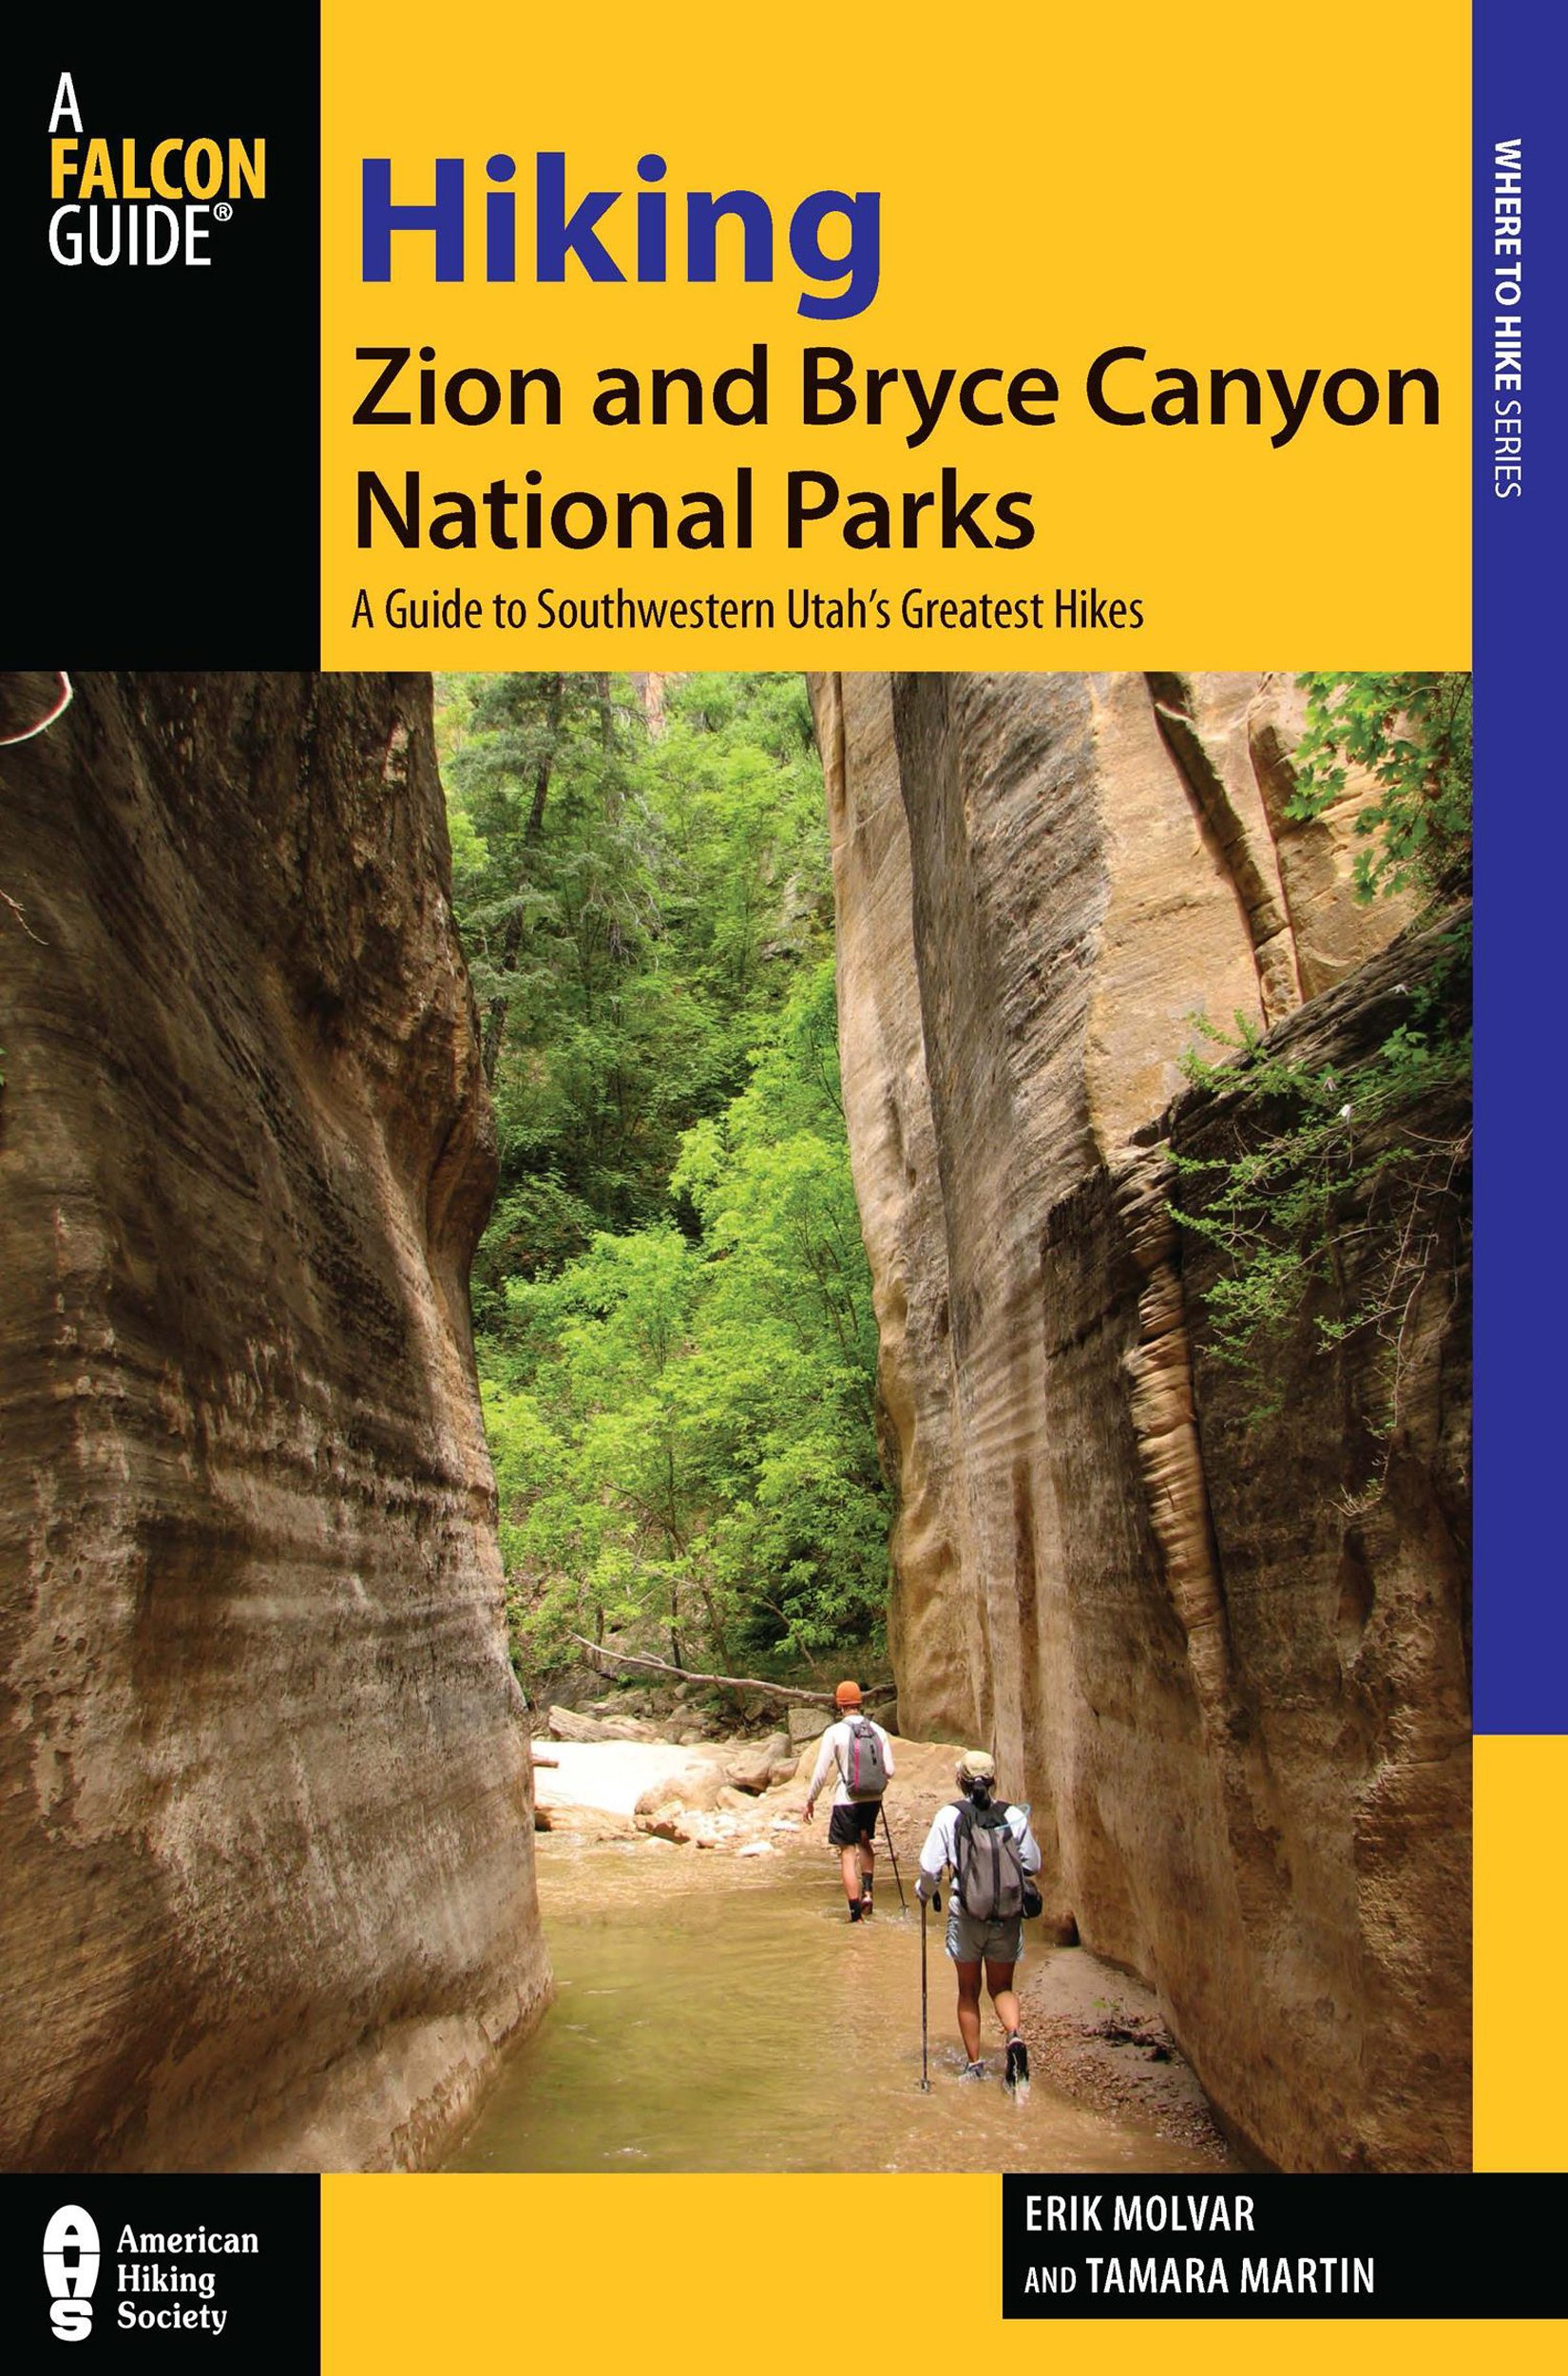 Hiking Zion and Bryce Canyon National Parks: A Guide To Southwestern Utah's Greatest Hikes (Regional Hiking Series) by Globe Pequot